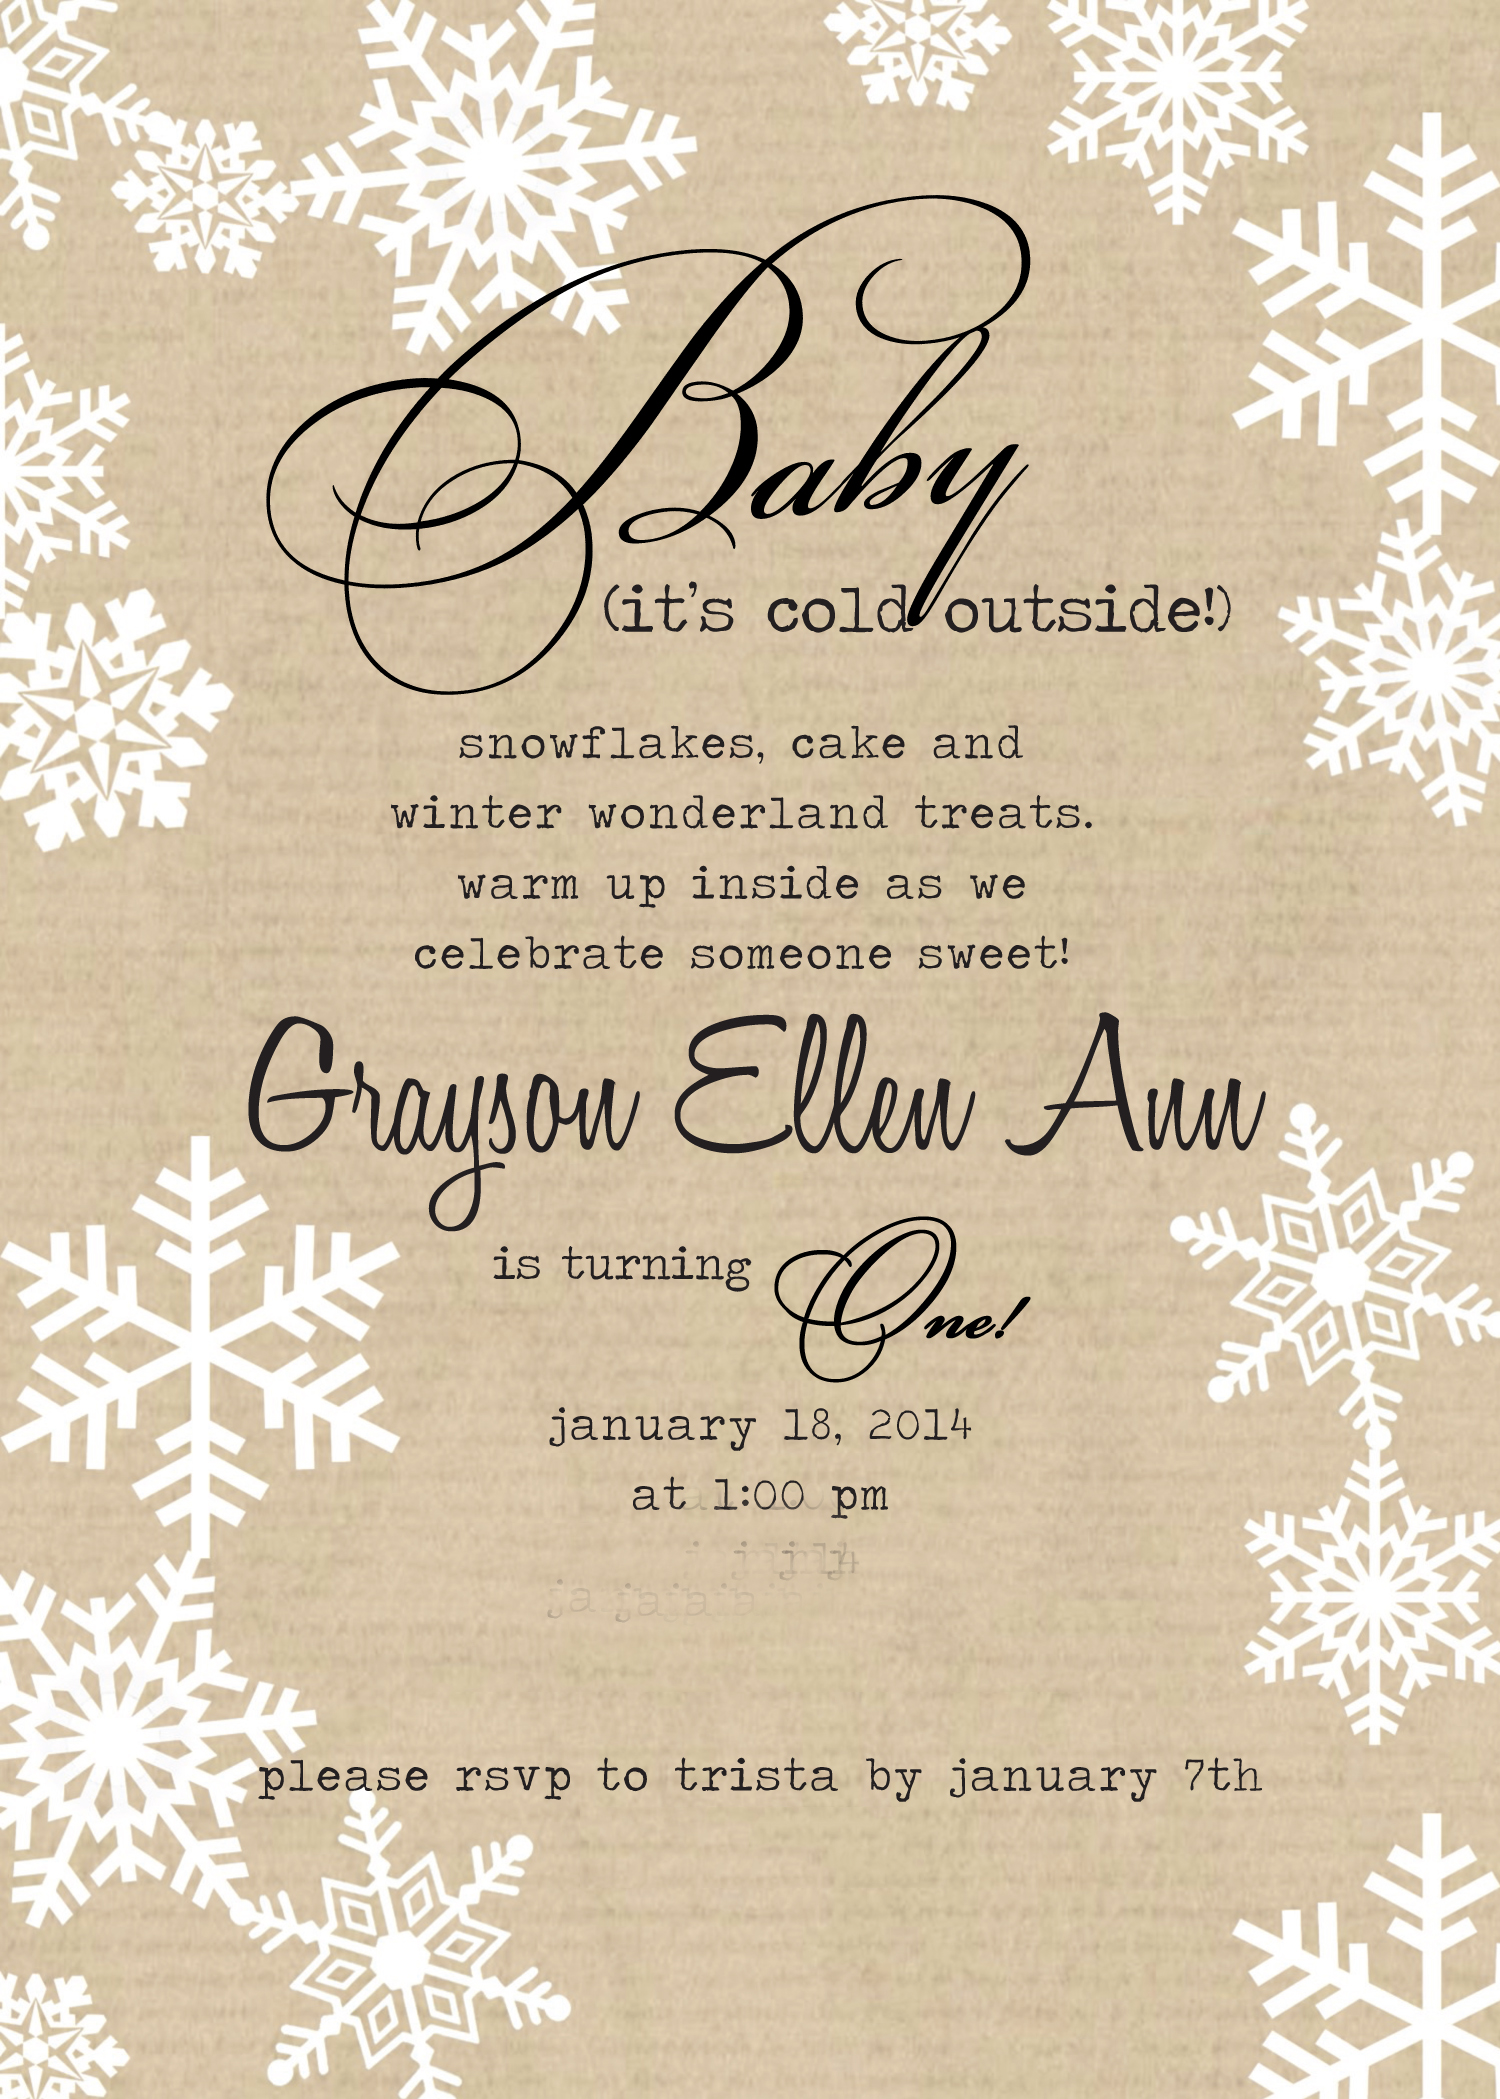 baby it's cold outside theme   simply social blog, Baby shower invitations